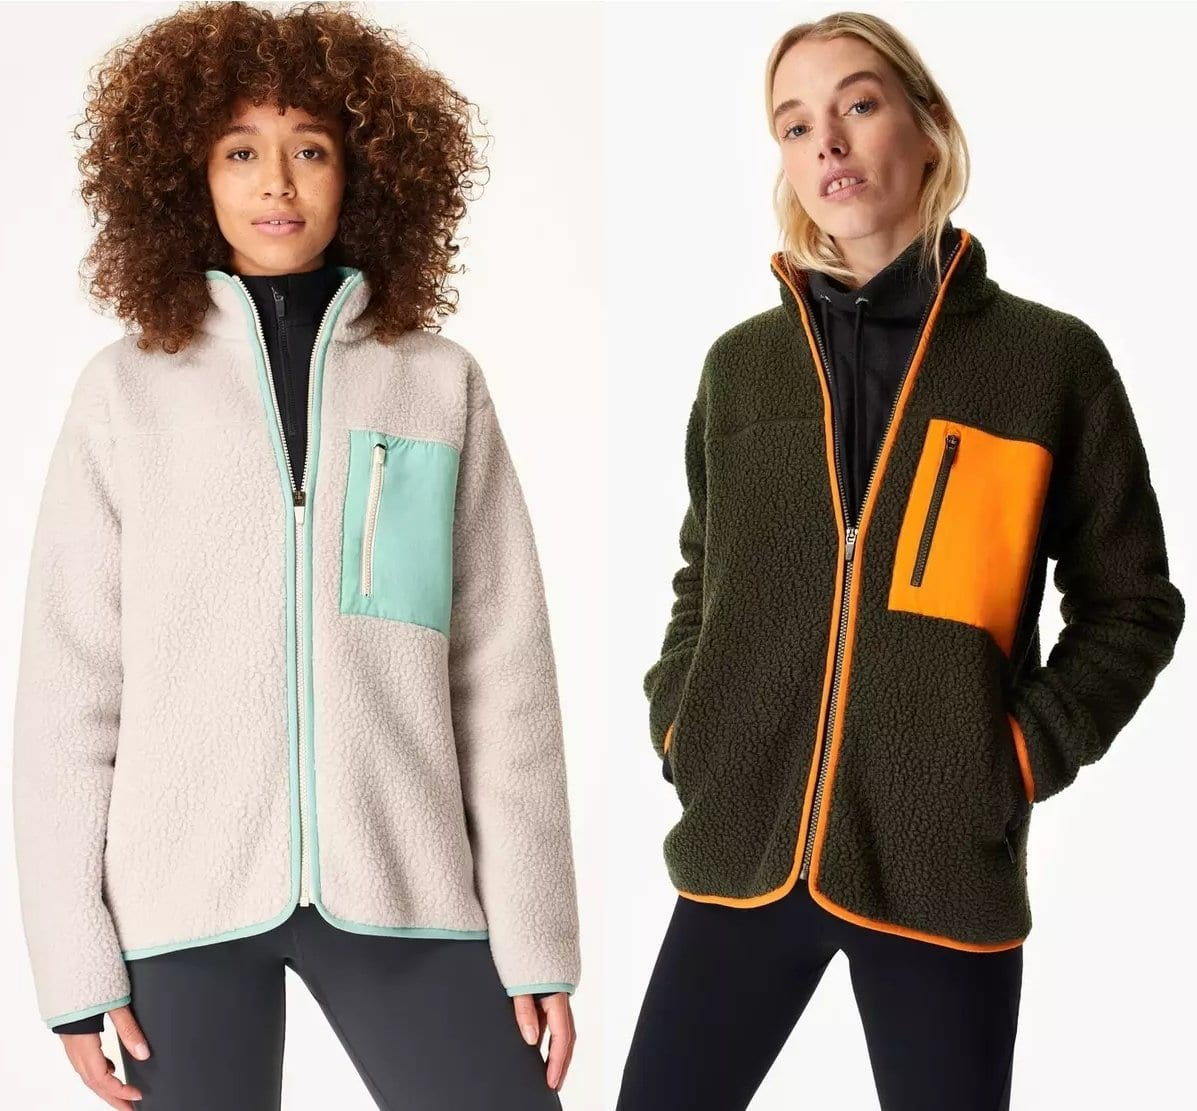 This sherpa jacket with insulating and breathable fleece is perfect for hiking and more